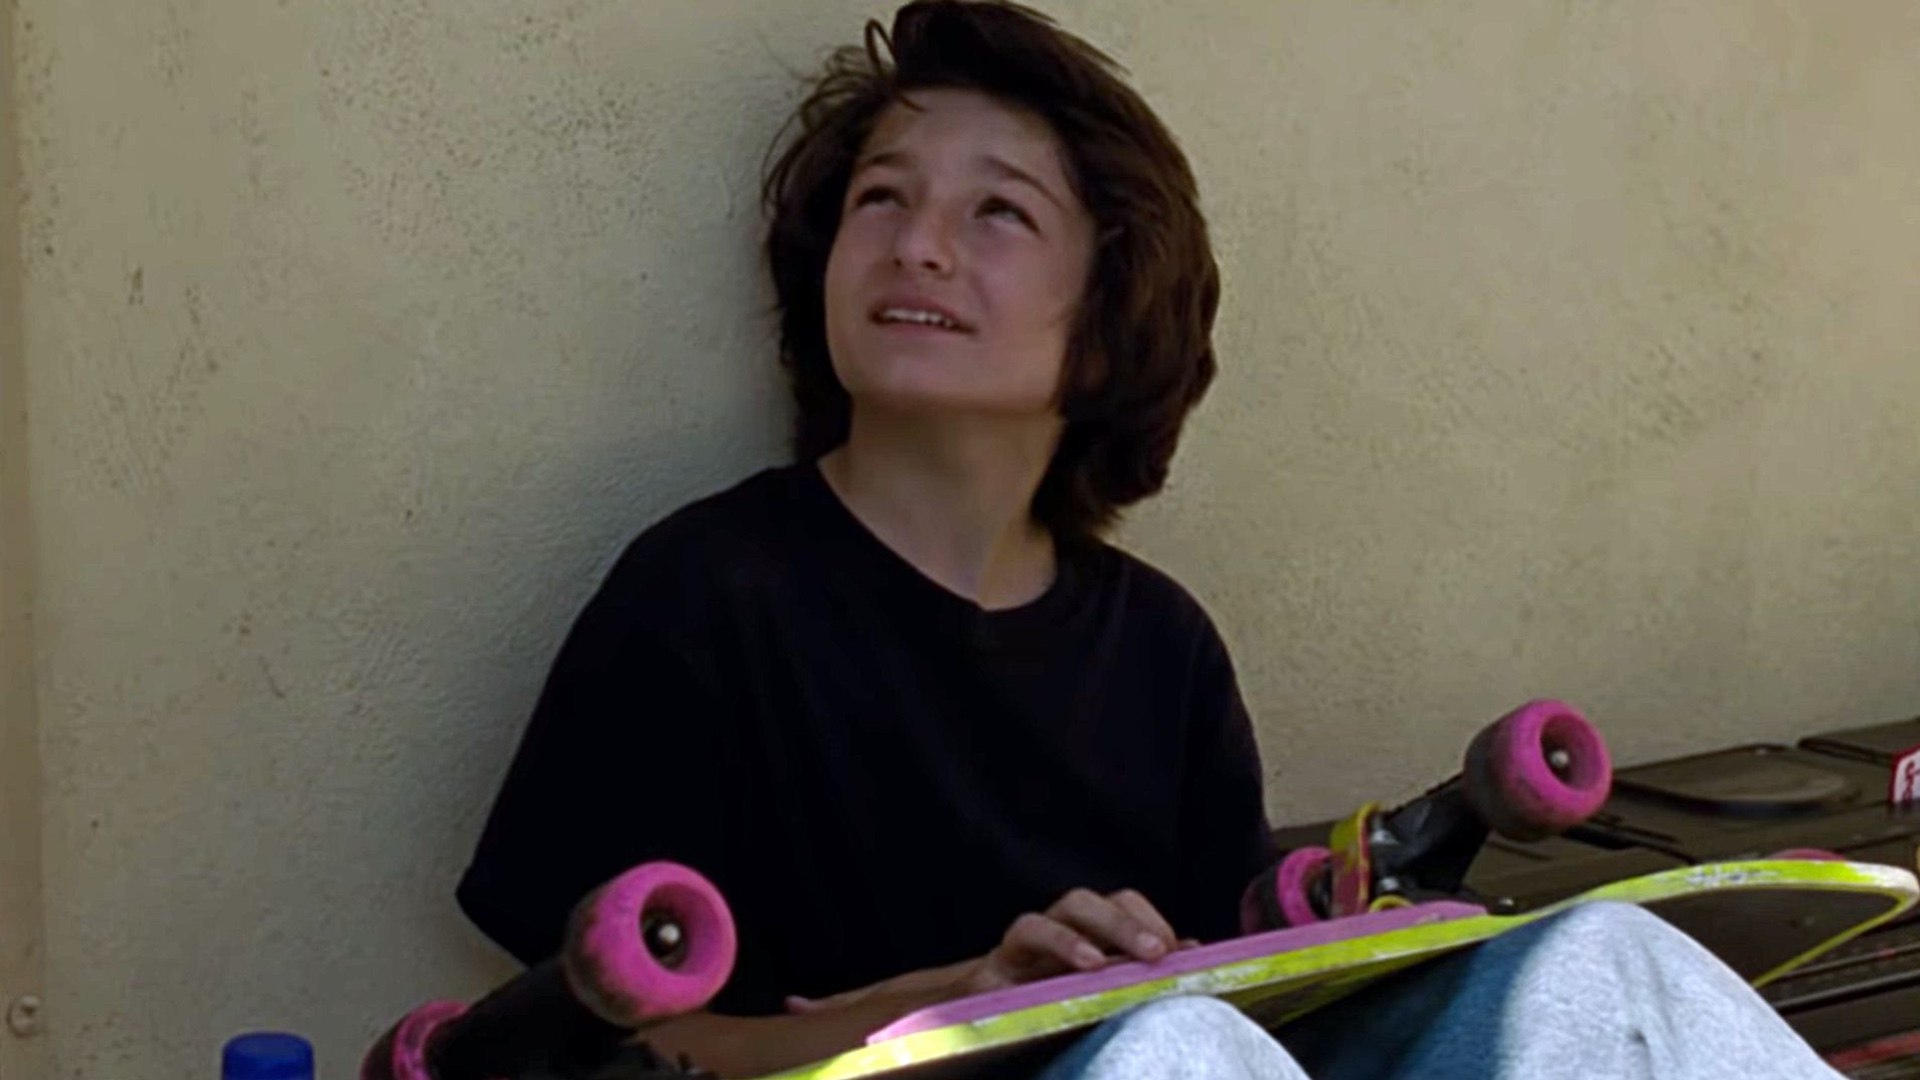 great-new-trailer-for-jonah-hills-90s-set-skate-culture-film-mid90s-social